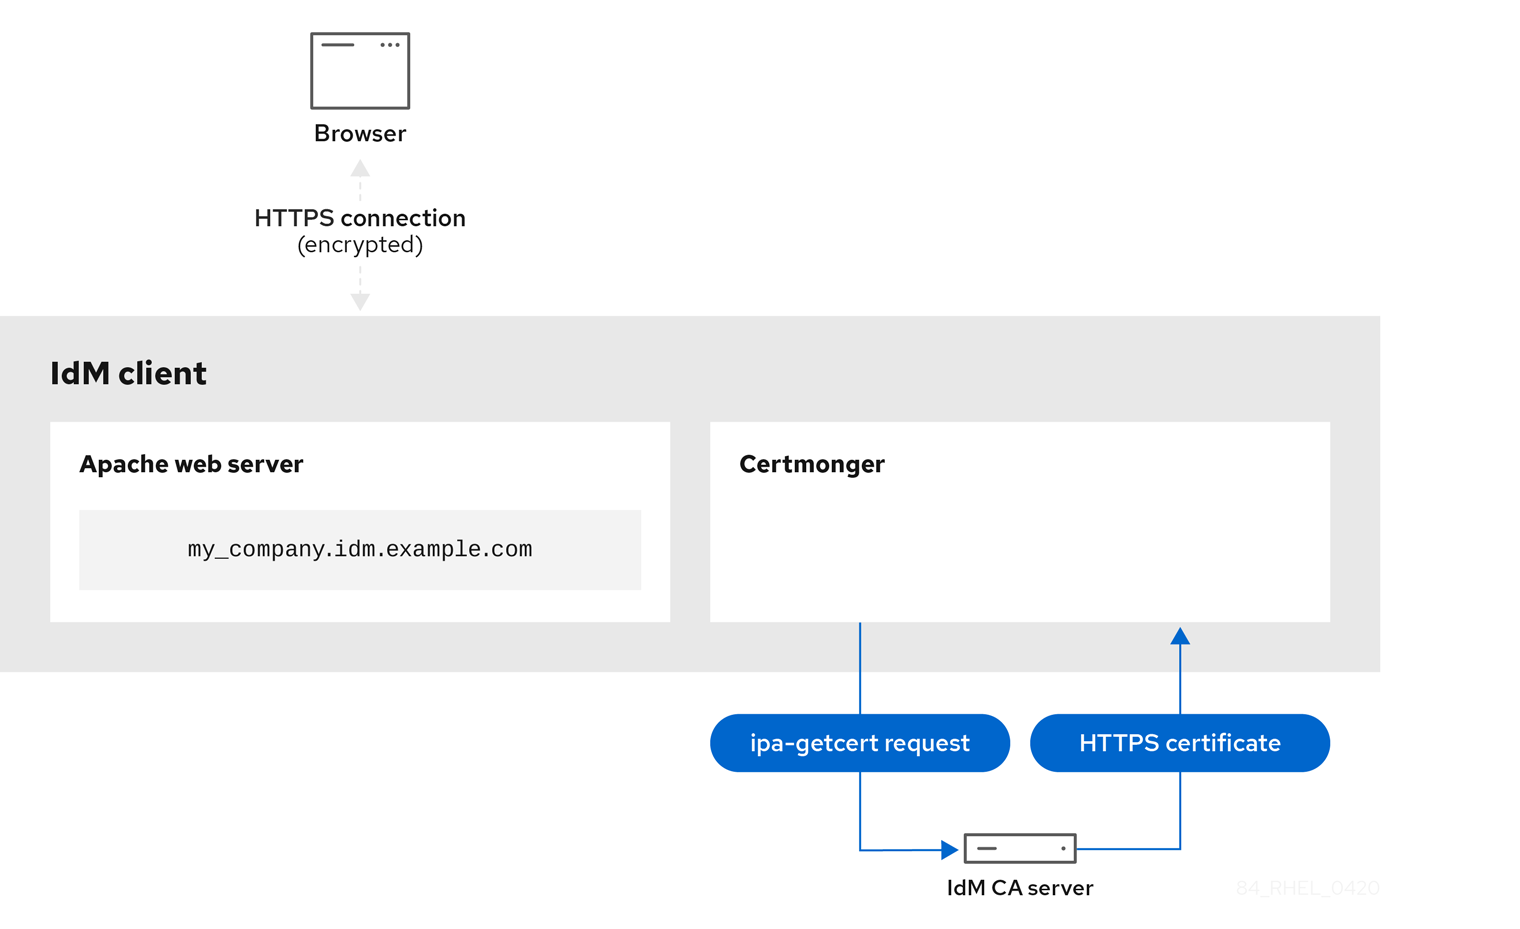 A diagram displaying an arrow from the certmonger service on the IdM client connecting to the IdM CA server to show it is performing an ipa-getcert request. An arrow from the IdM CA server to the Certmonger is labeled HTTPS certificate to show it is transferring an HTTPS certificate to the certmonger service.